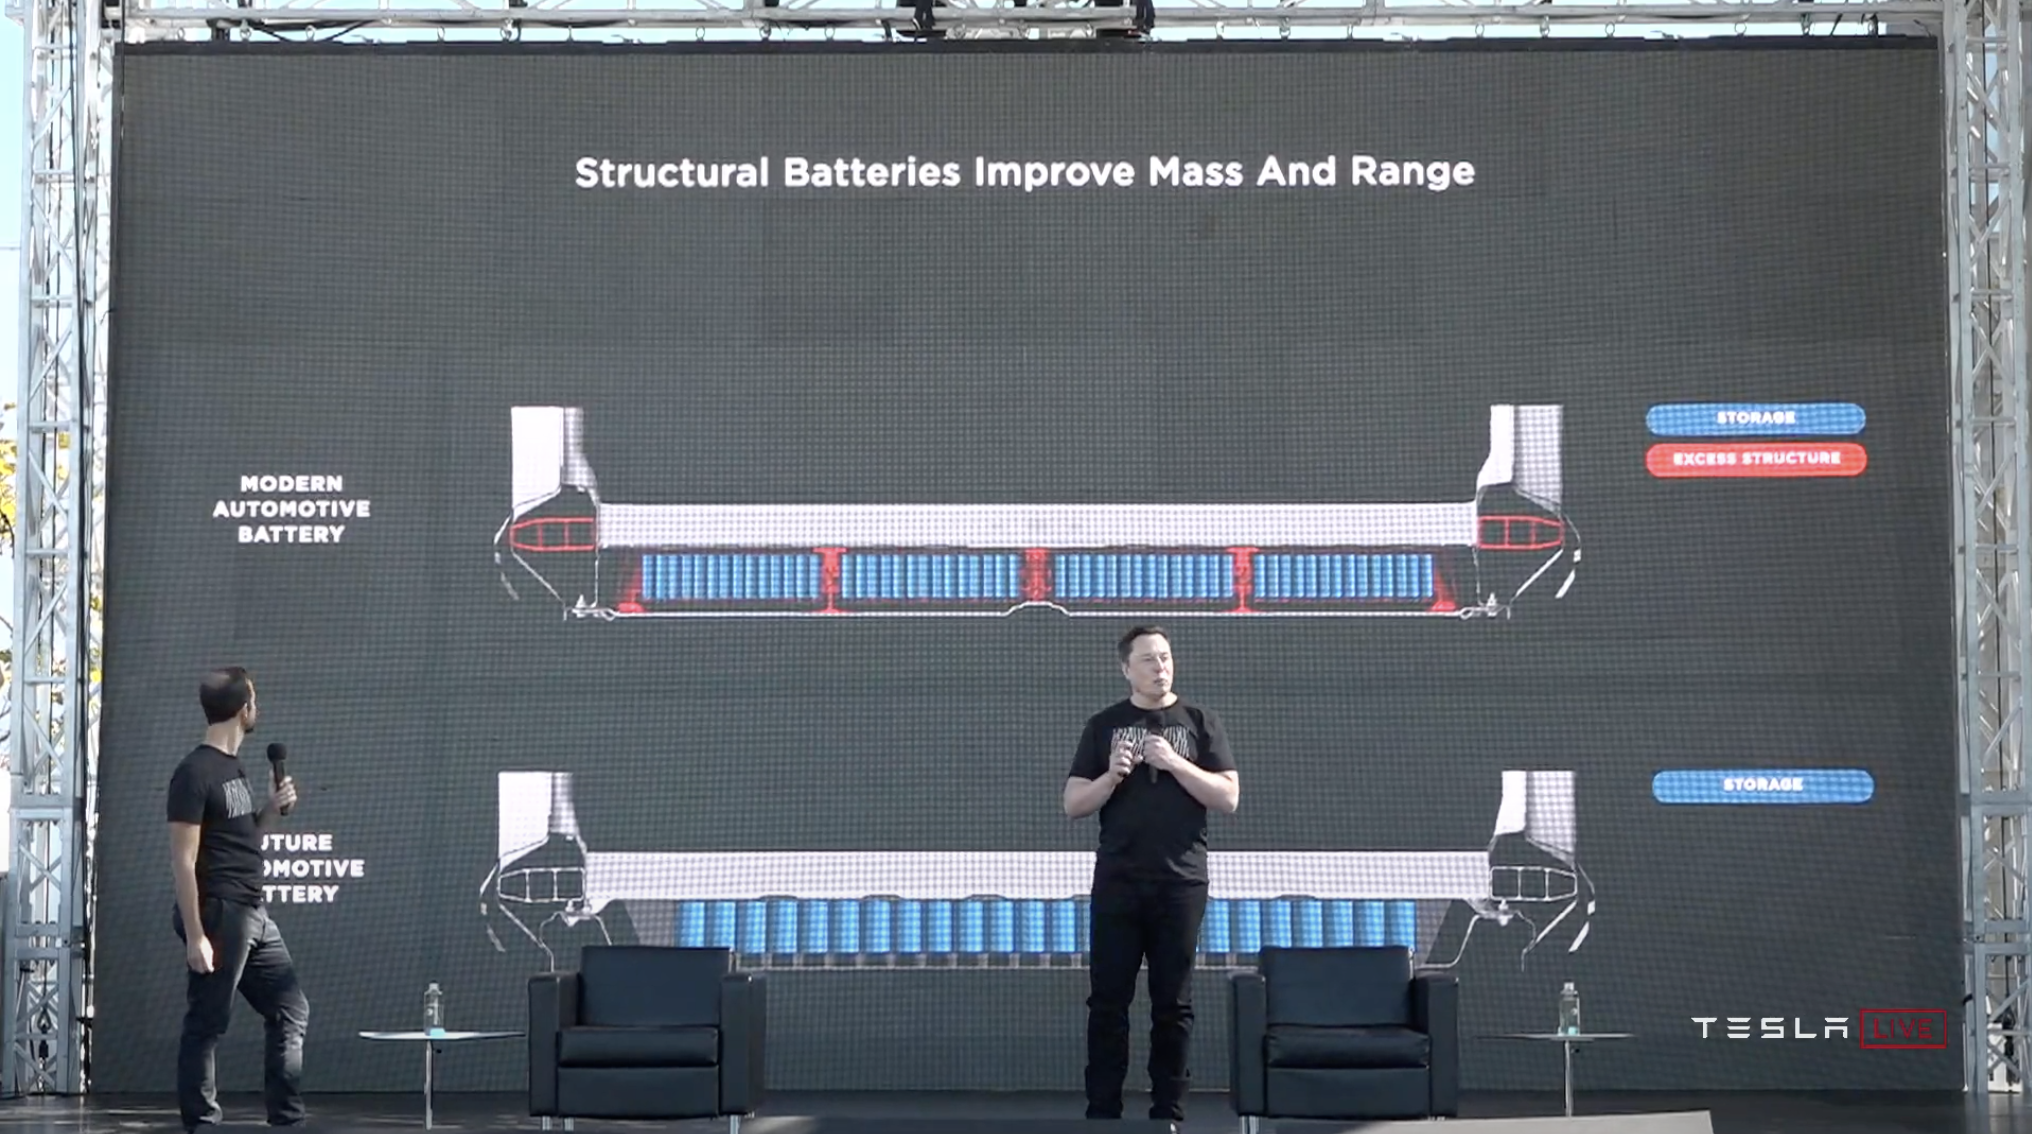 tesla-structural-batteries-improve-mass-and-range